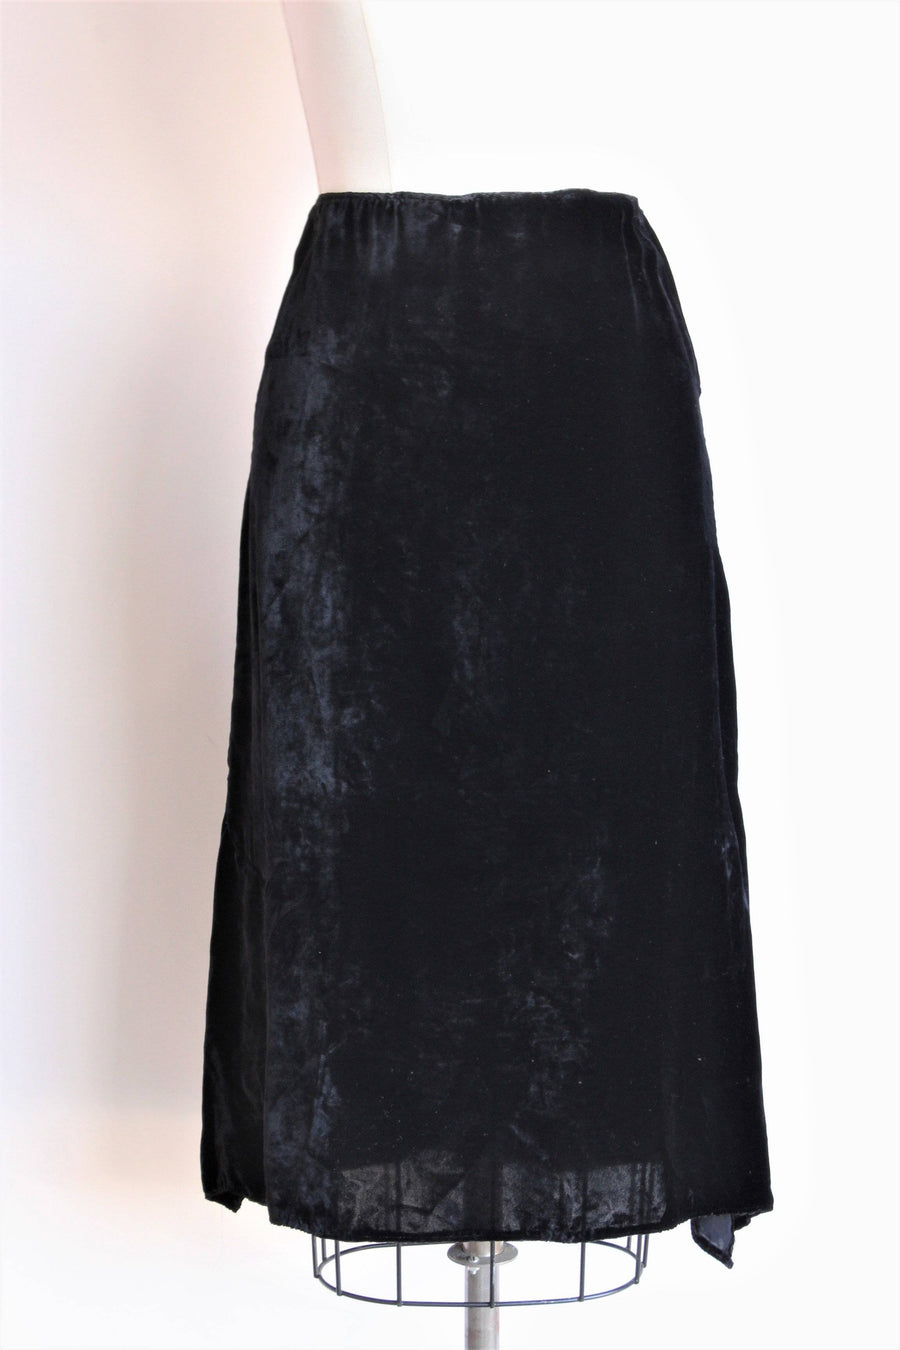 Vintage 1930s Black Silk Velvet Skirt With Side Slits